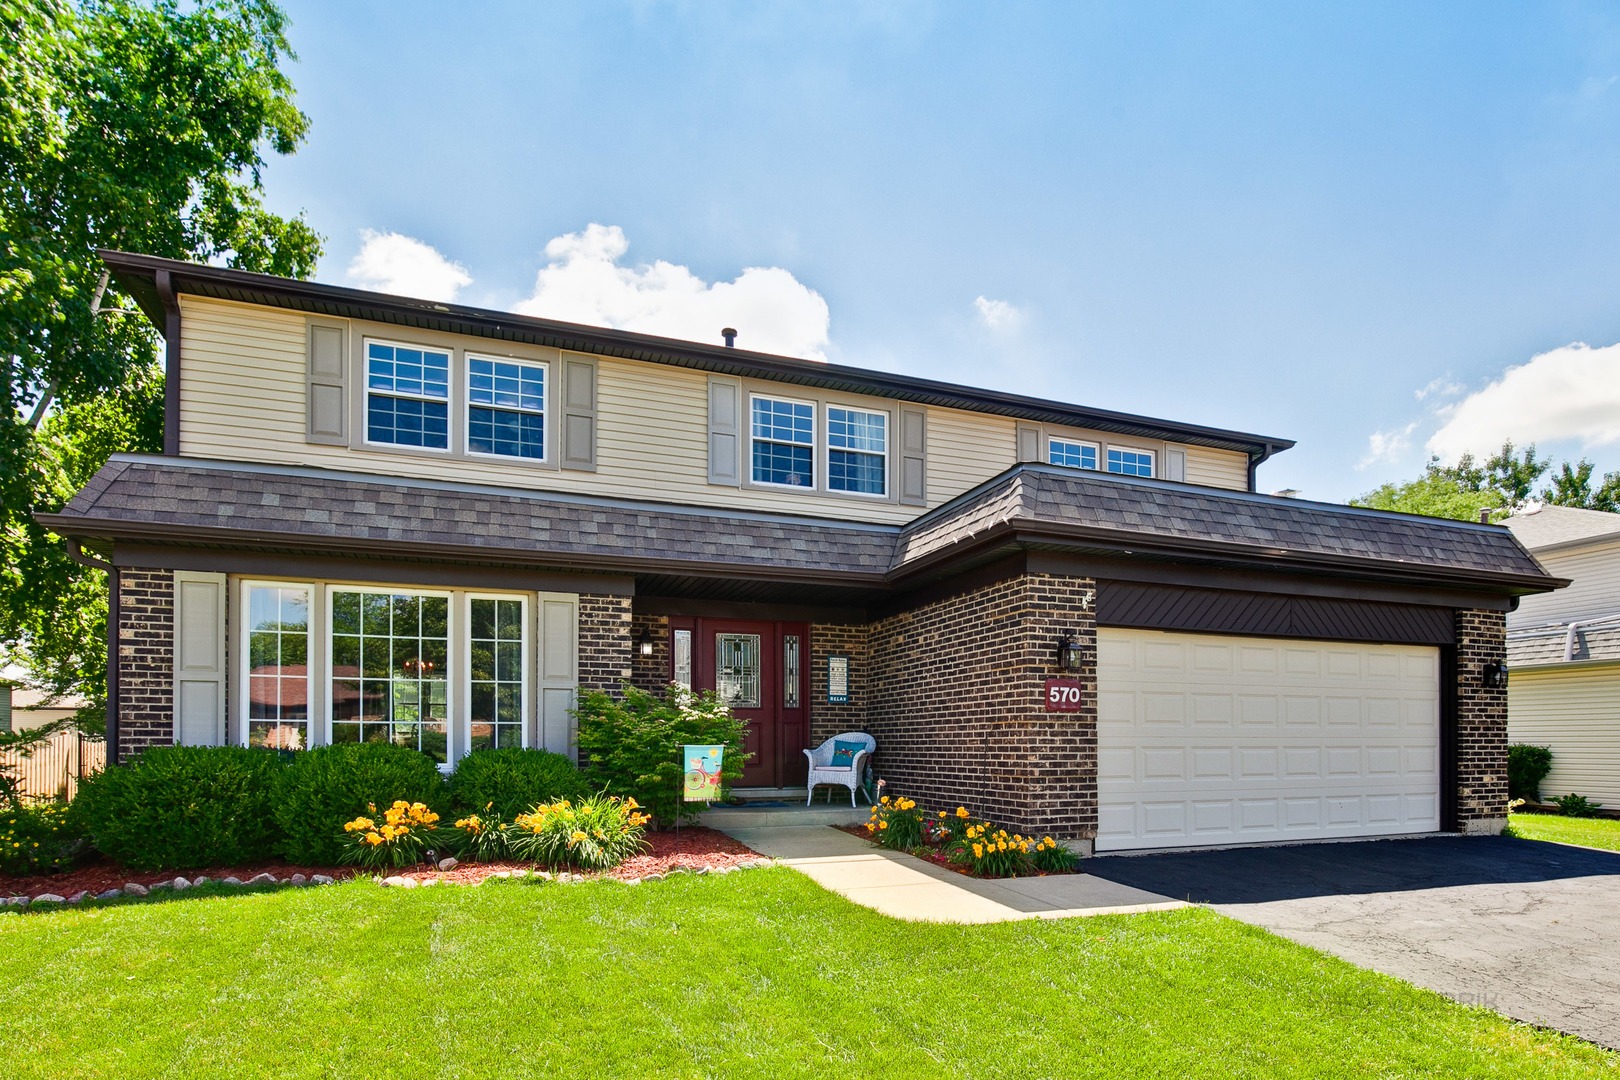 570 Cortland Drive, Lake Zurich in Lake County, IL 60047 Home for Sale